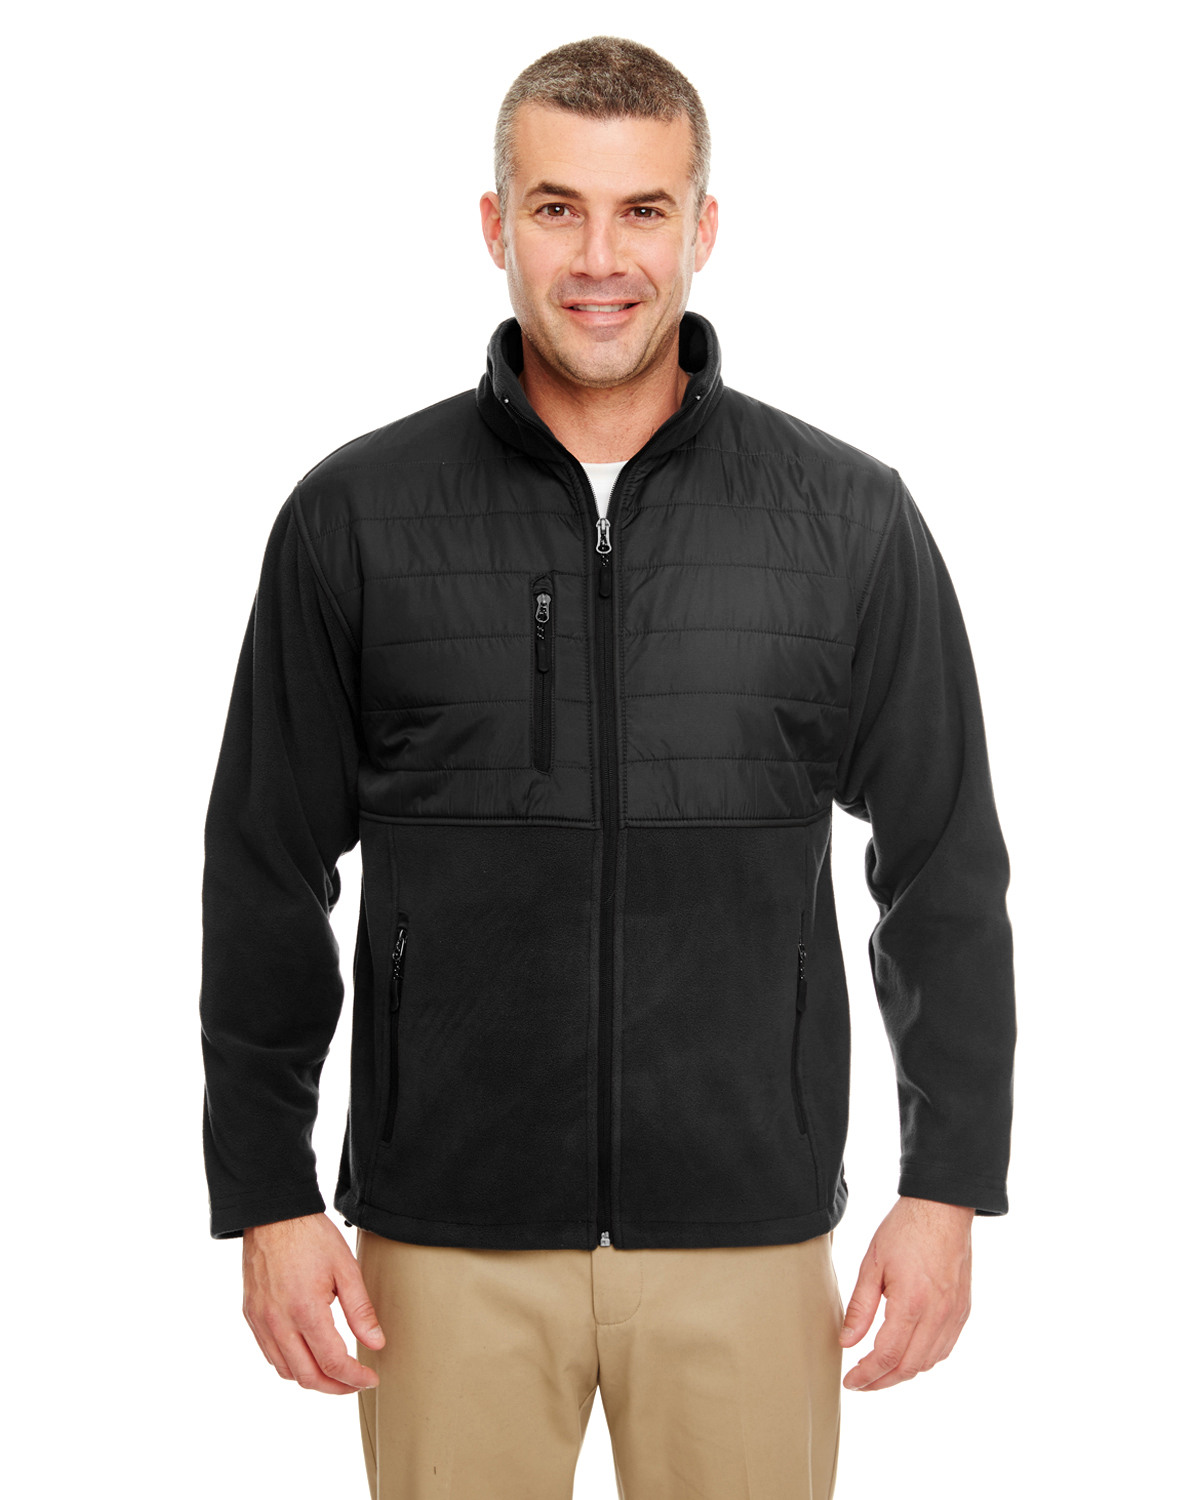 Men's Fleece Jacket with Quilted Yoke Overlay